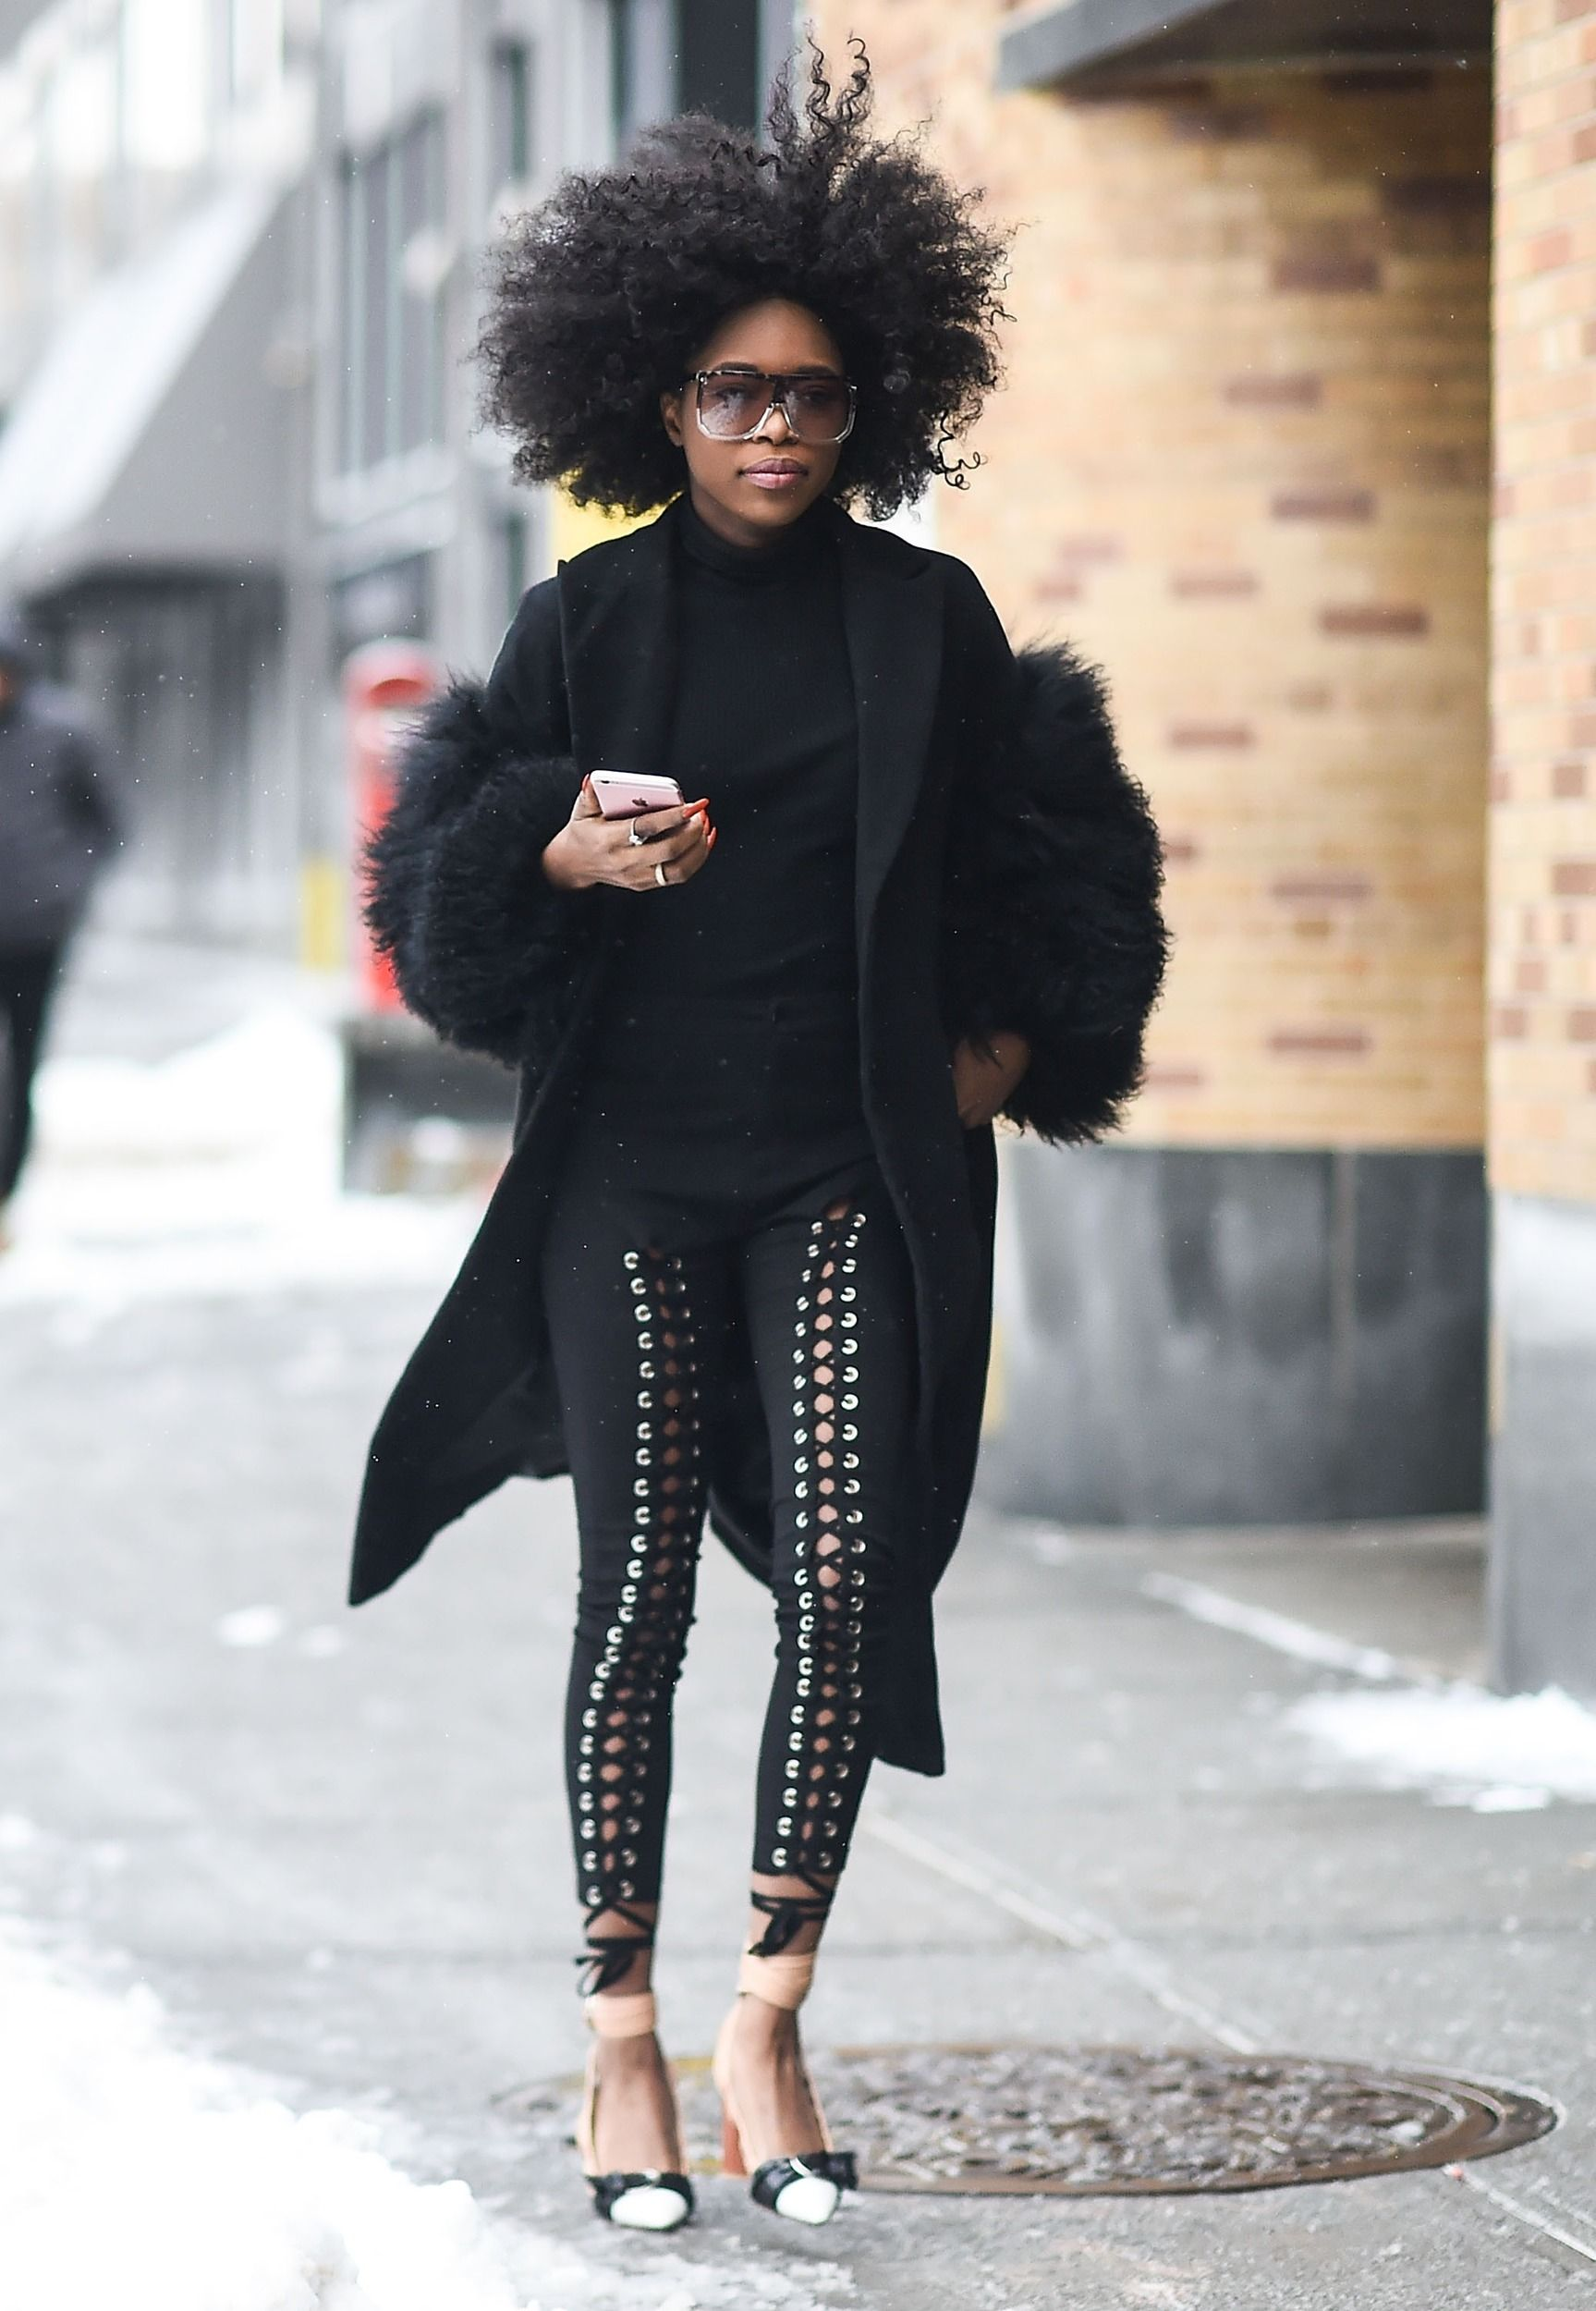 Street style from nyfw teaches us the appropriate blizzard attire